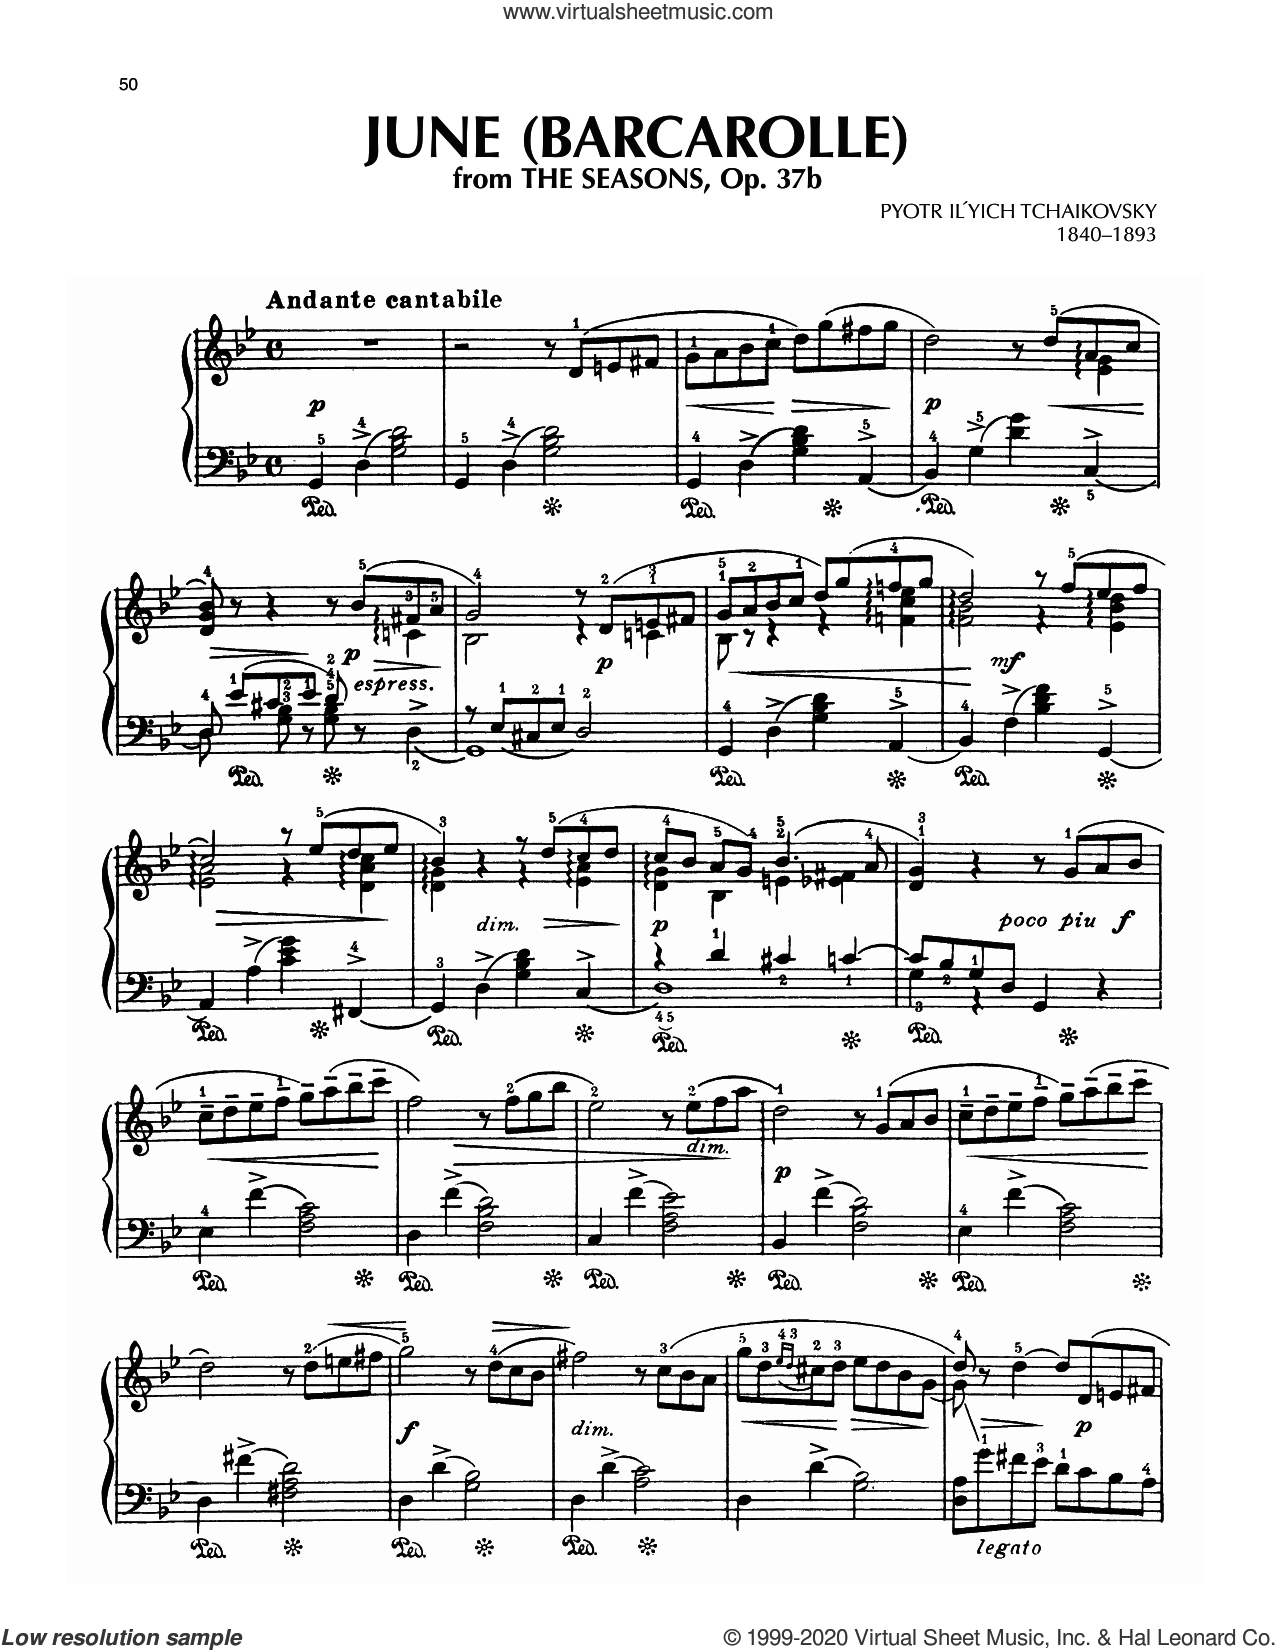 June: Barcarolle, Op. 37a/b sheet music for piano solo by Pyotr Ilyich Tchaikovsky, classical score, intermediate skill level